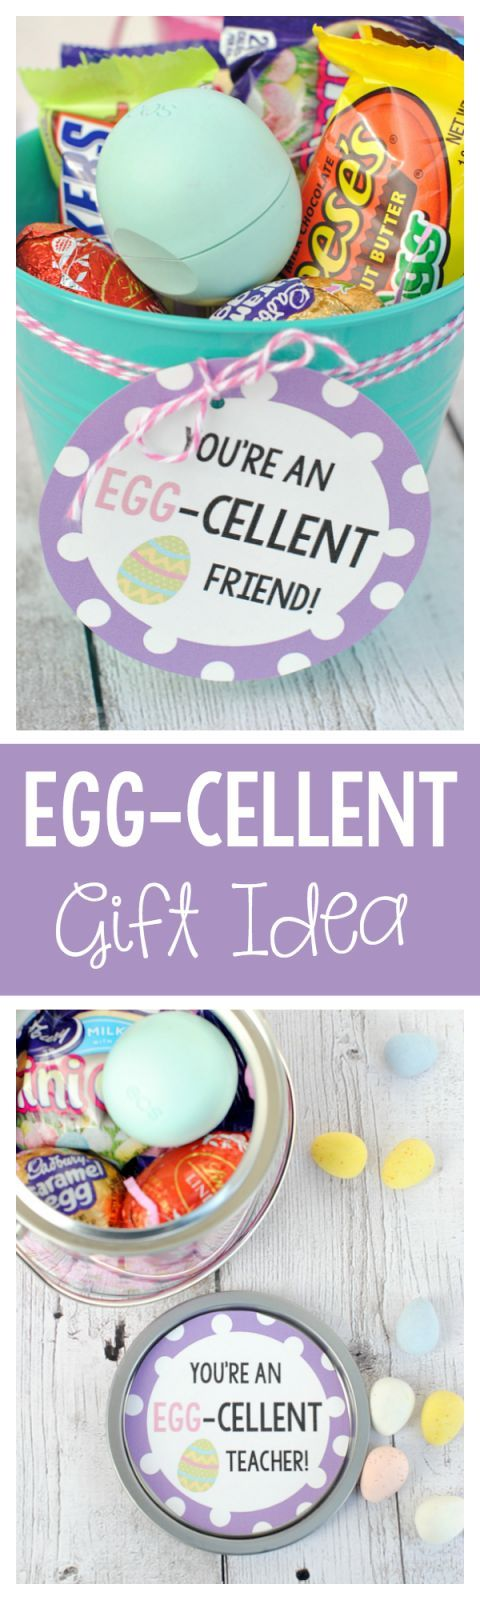 439 best celebrate teacher appreciation images on pinterest cute easter gift ideas egg cellent gift basket negle Gallery